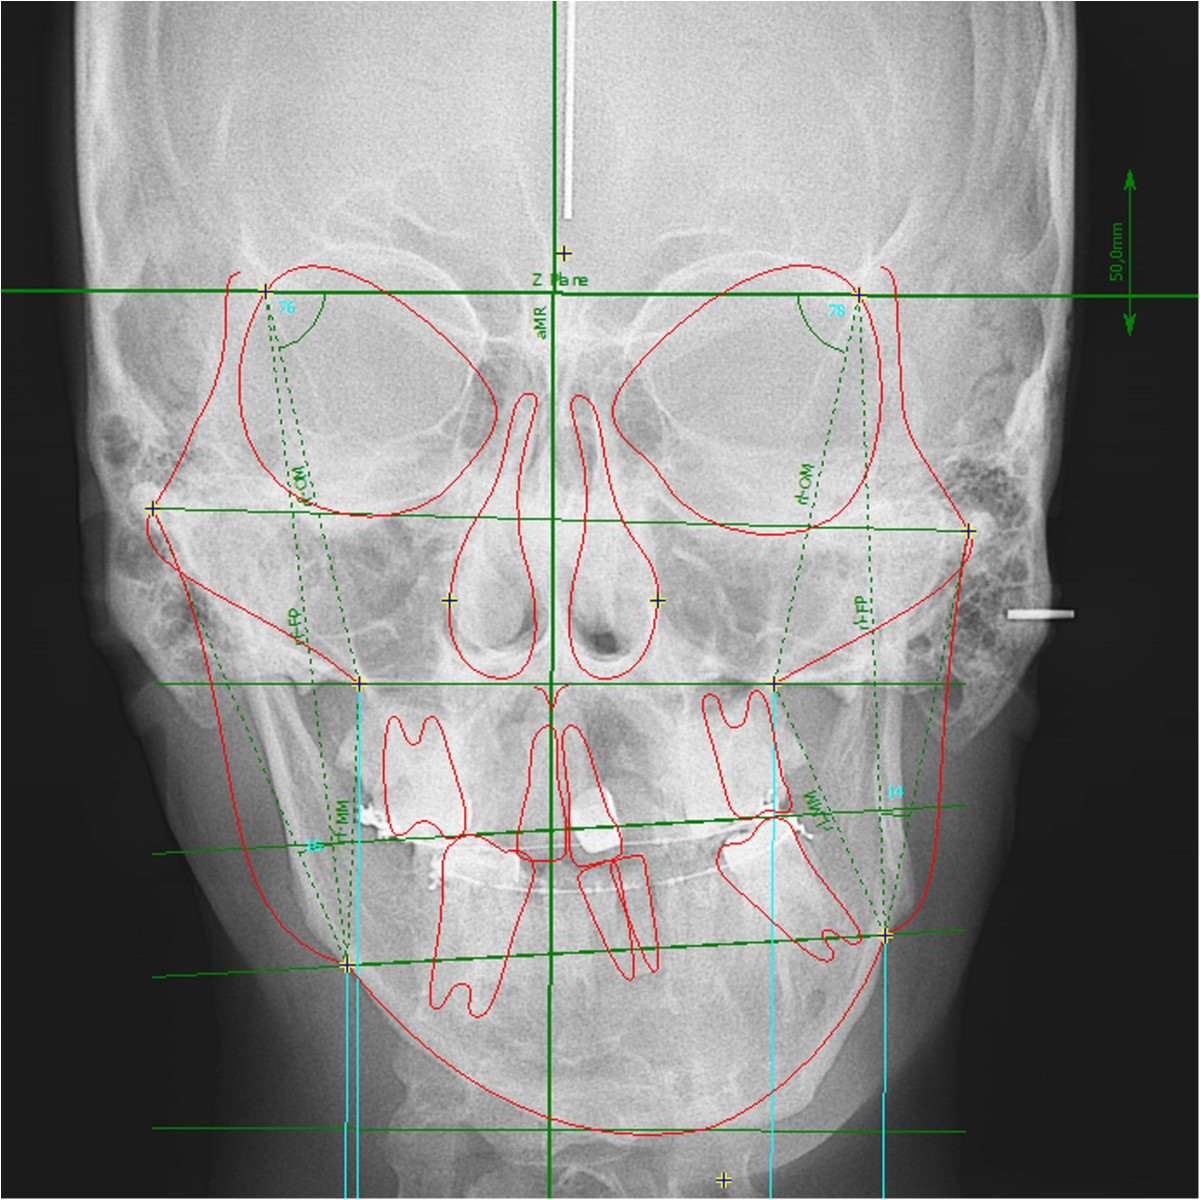 Image Result For Computerized X Ray In The Transverse Plane